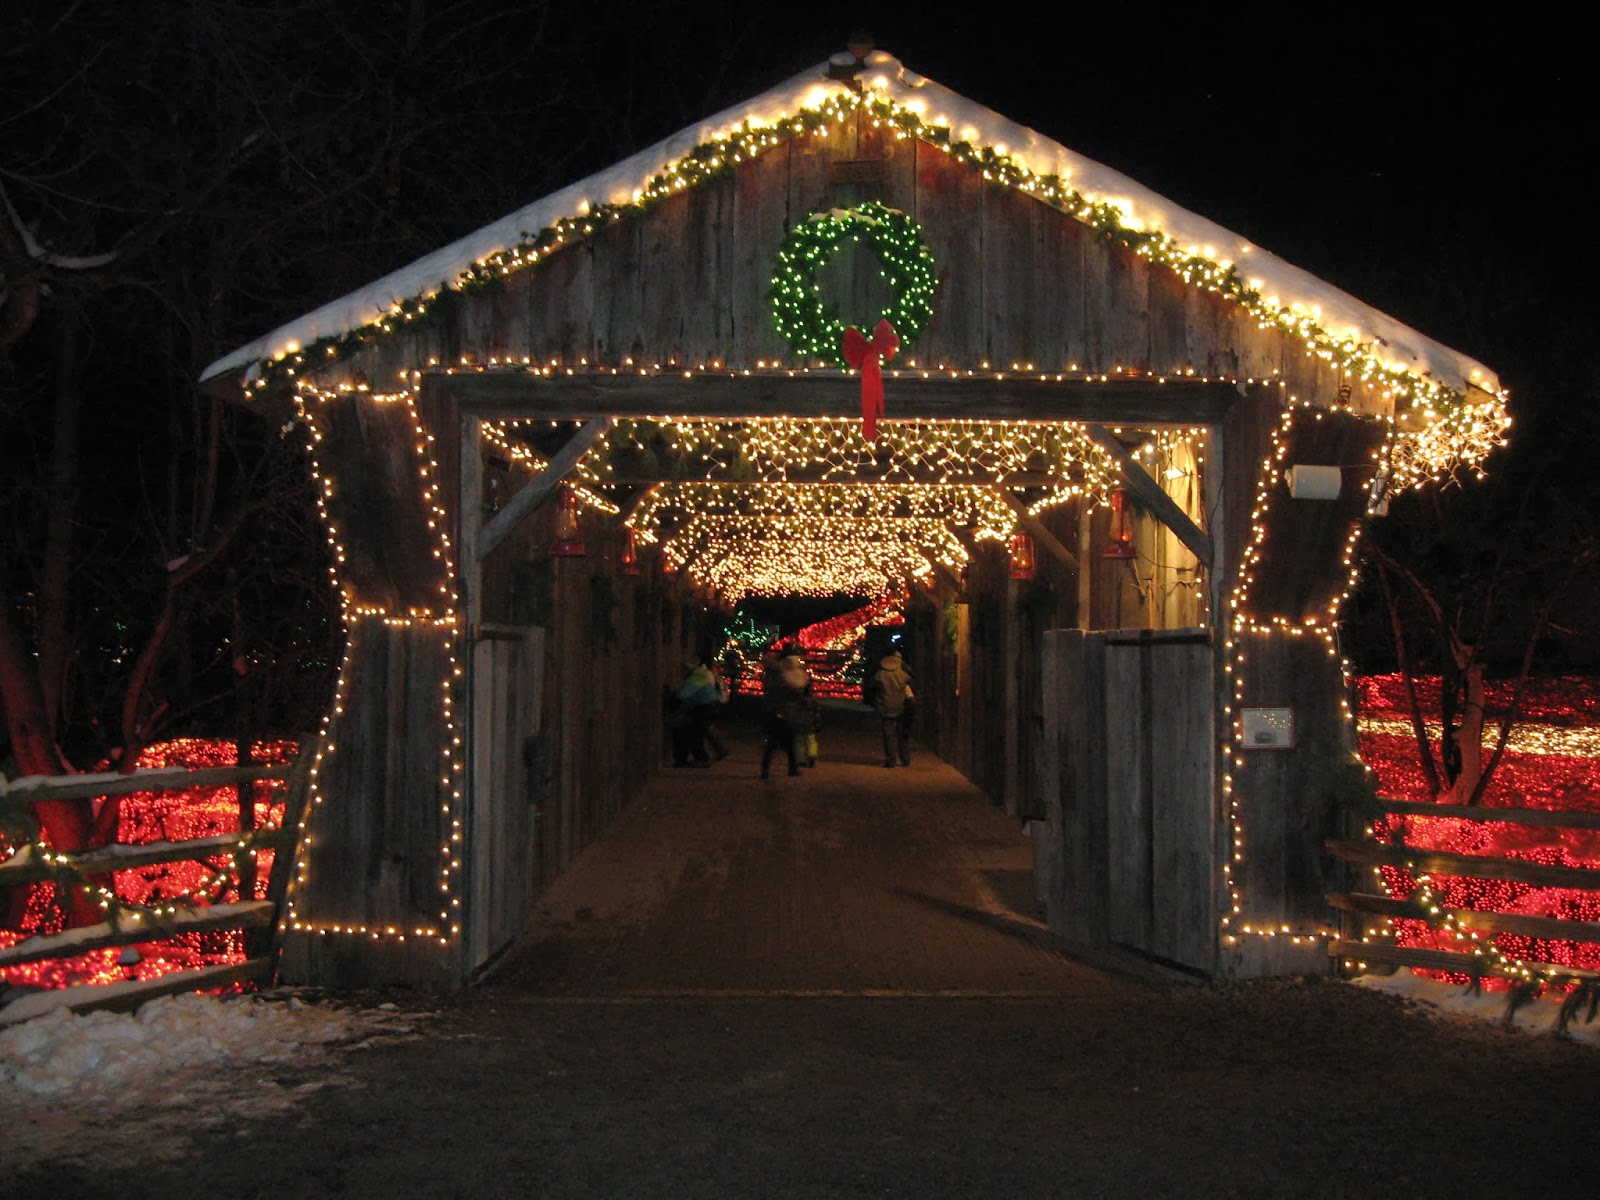 Clifton Mill Christmas Lights.The Merry Dressmaker The Lights At Clifton Mill